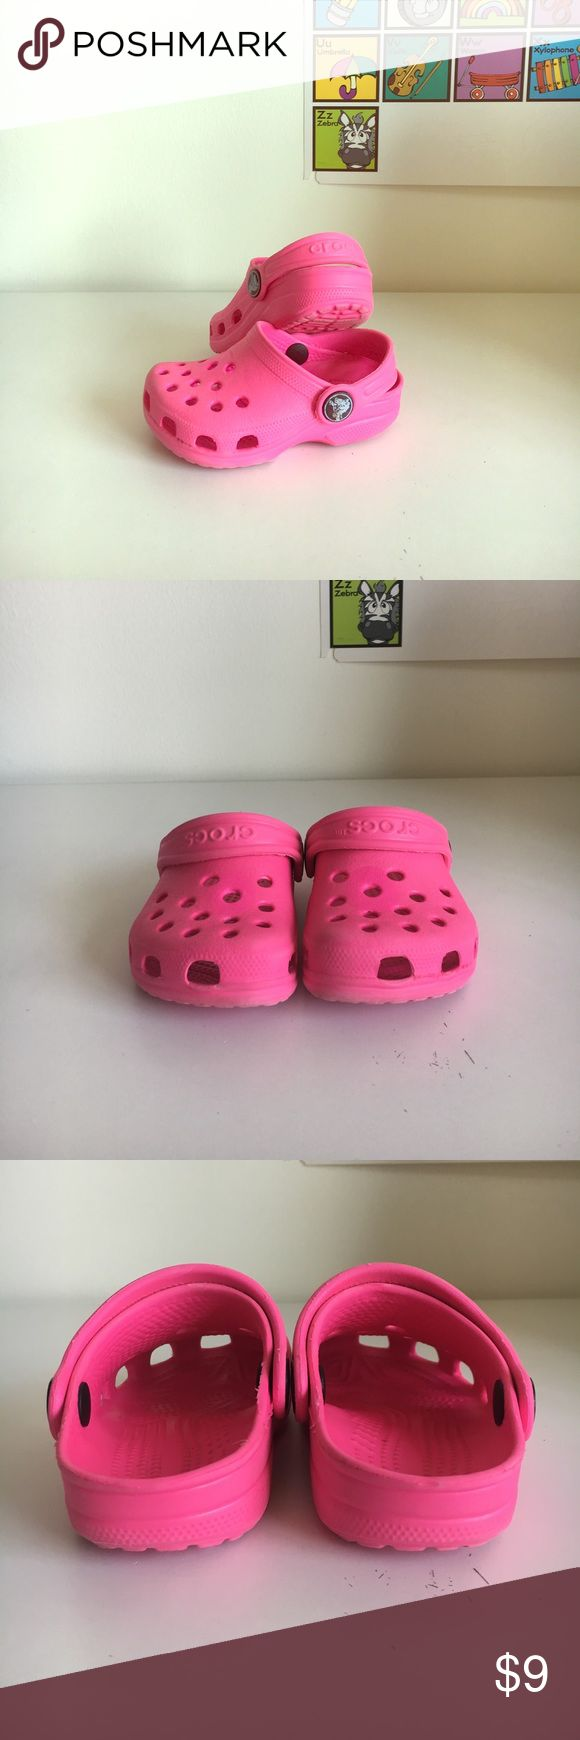 Crocs children's 4-5 good condition! Almost new! Crocs children's 4-5 good condition! Almost new! Why buy new when the kids grow sooo fast!!! Just purchase add on to customize the pair :) Shoes Sandals & Flip Flops